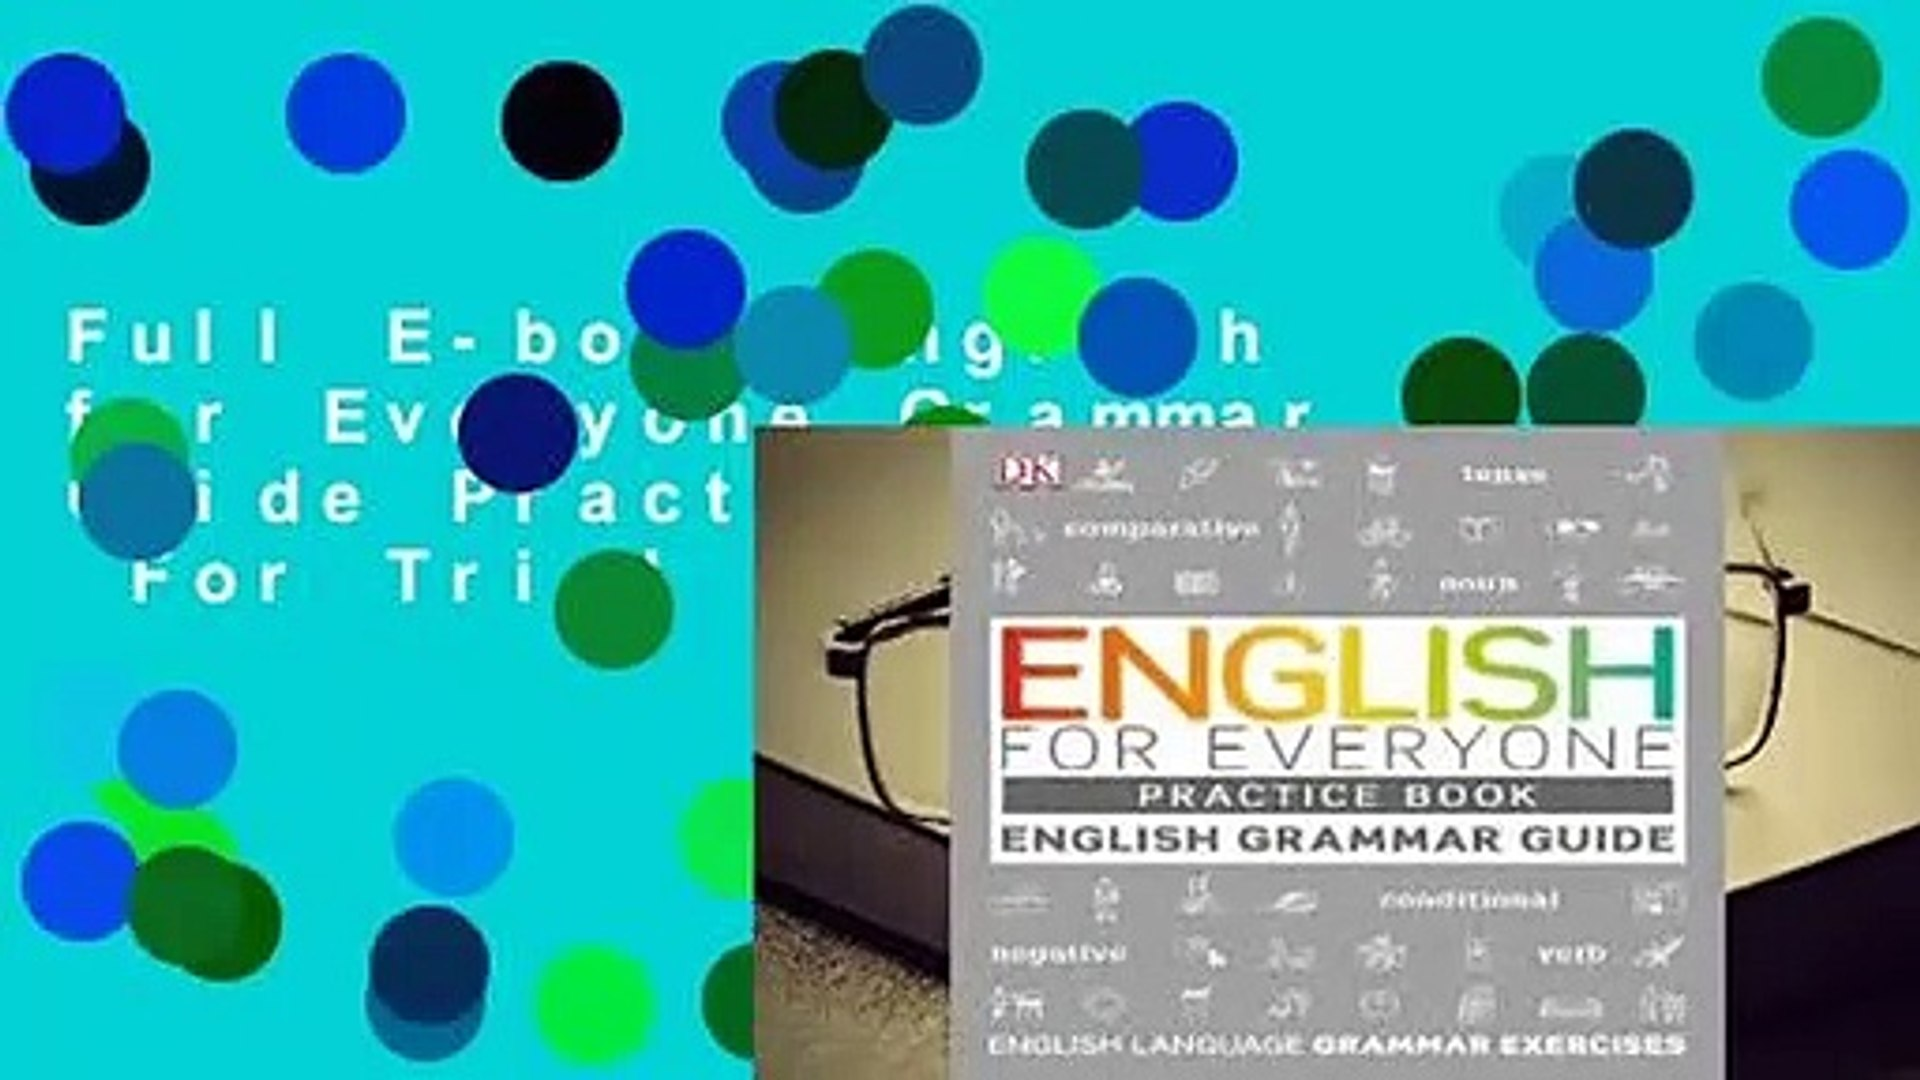 Full E-book English for Everyone Grammar Guide Practice Book For Trial